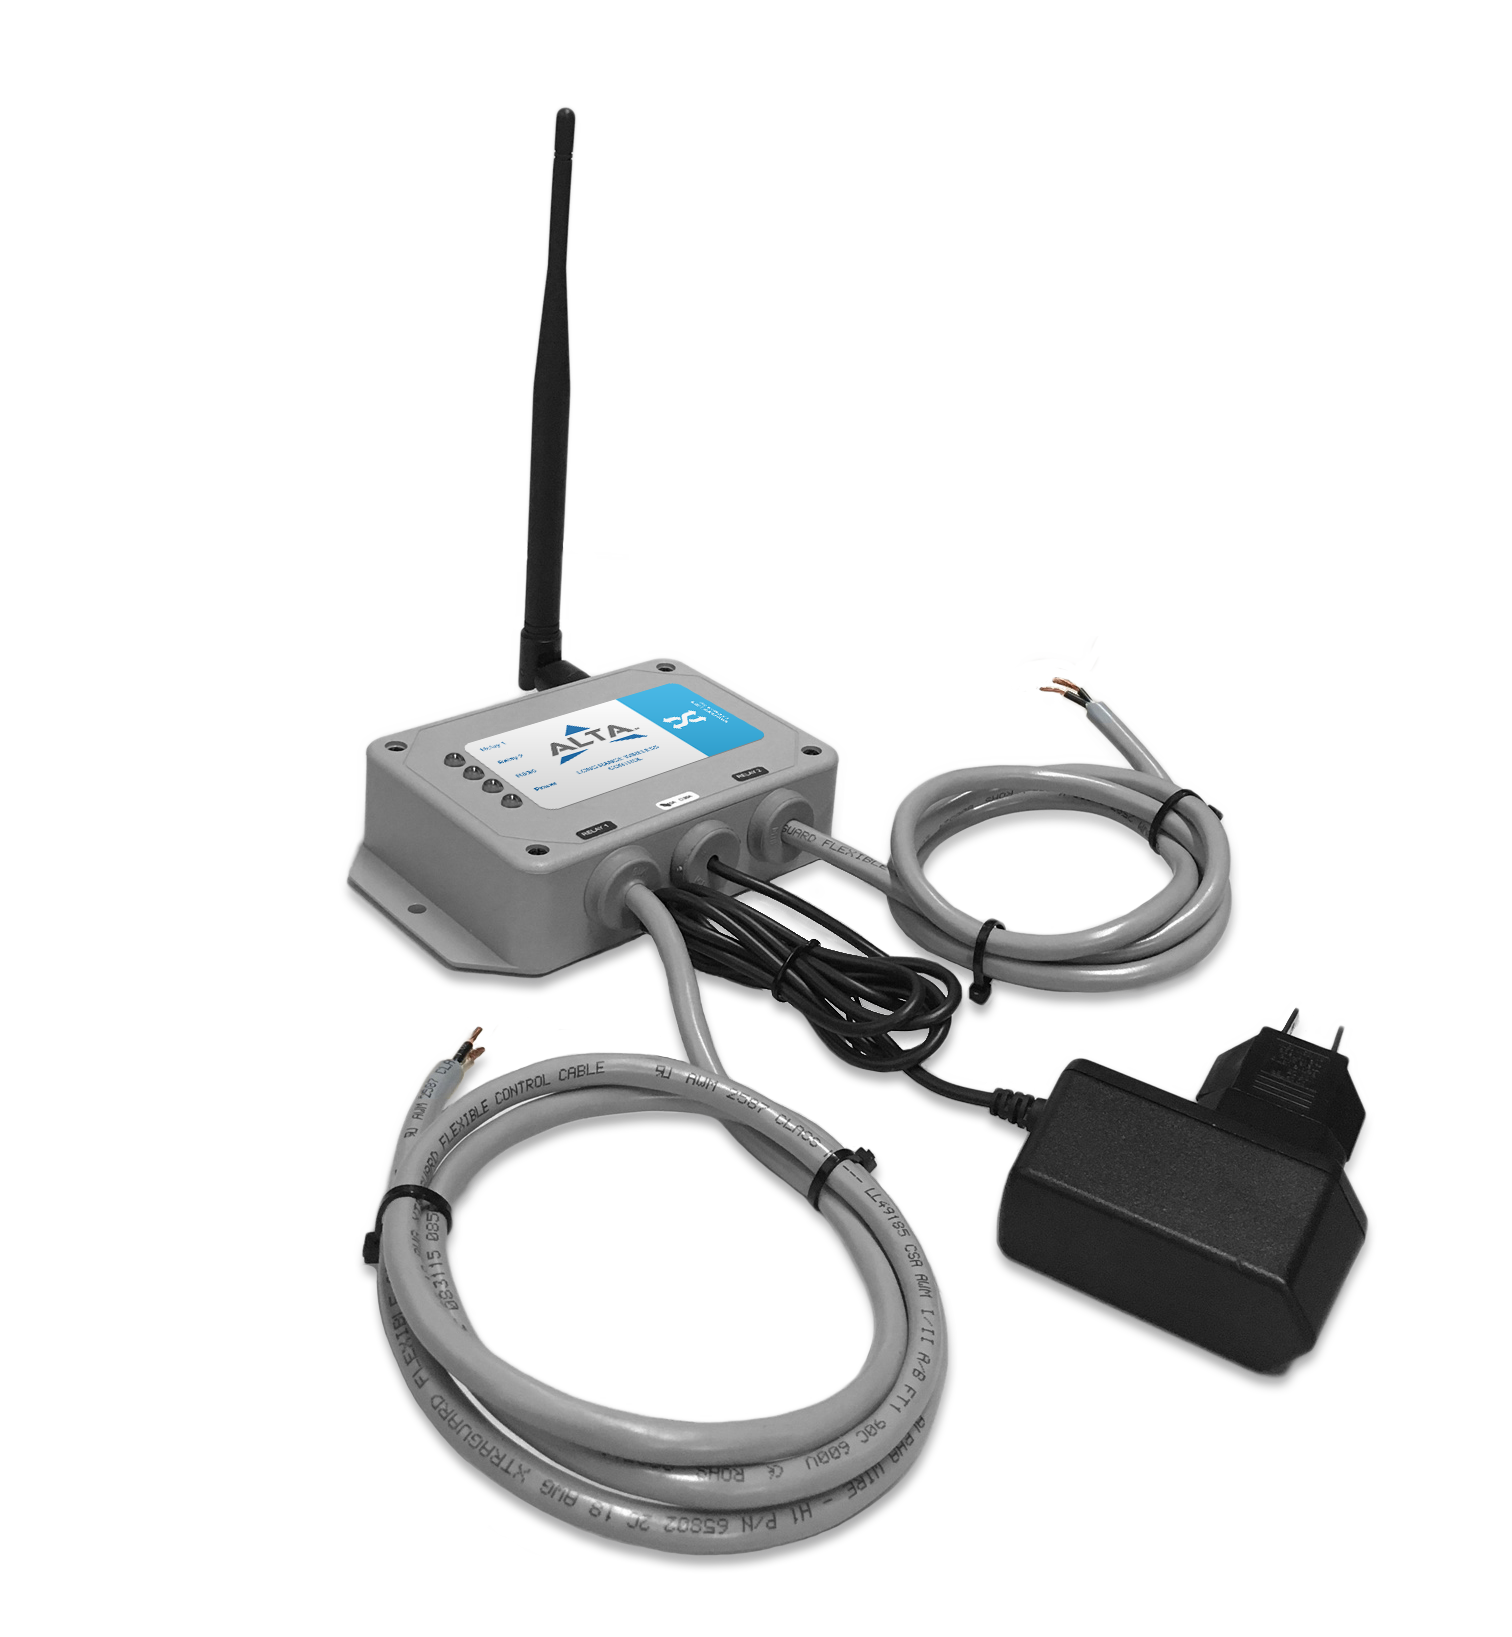 ALTA Wireless Control